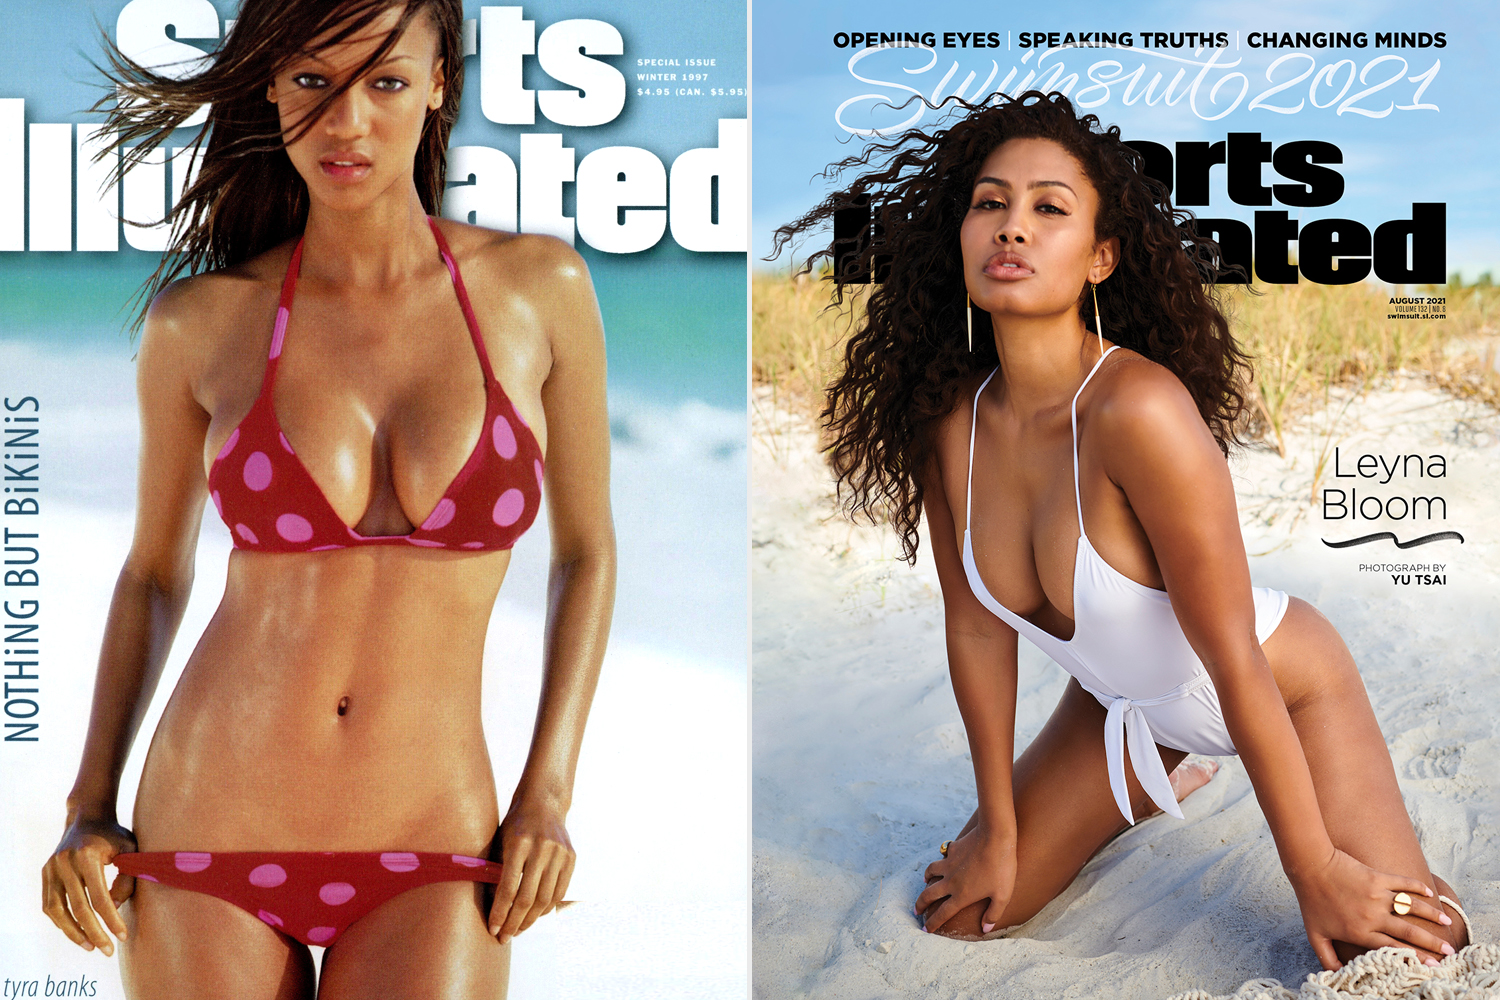 1997 Sports Illustrated Swimsuit Issue Cover. Tyra Banks; LEYNA BLOOM SI Swim cover